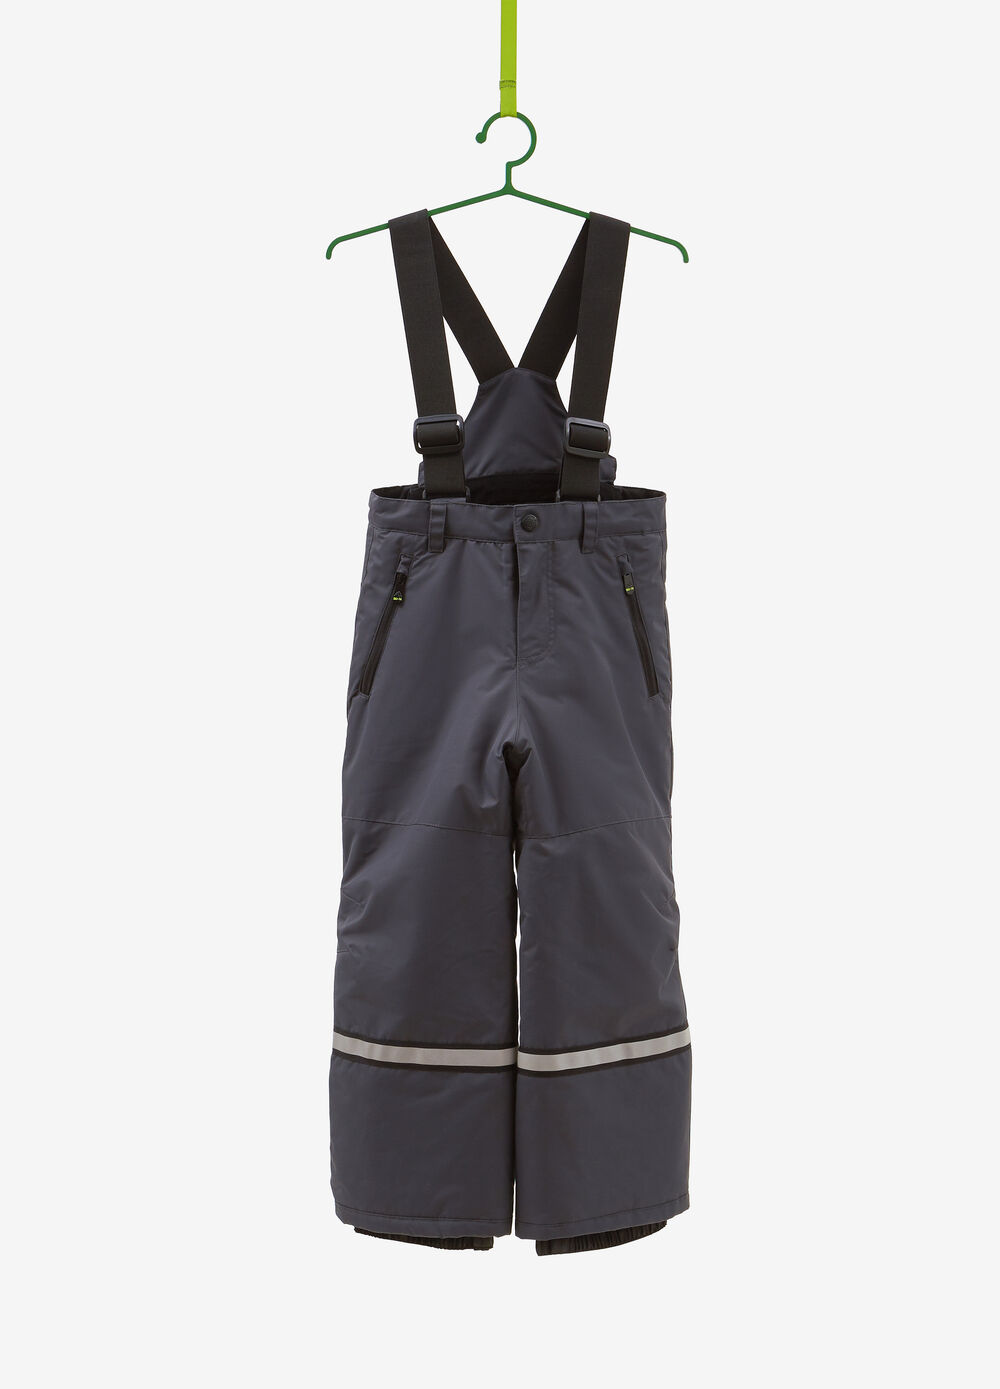 Dungaree-style ski trousers